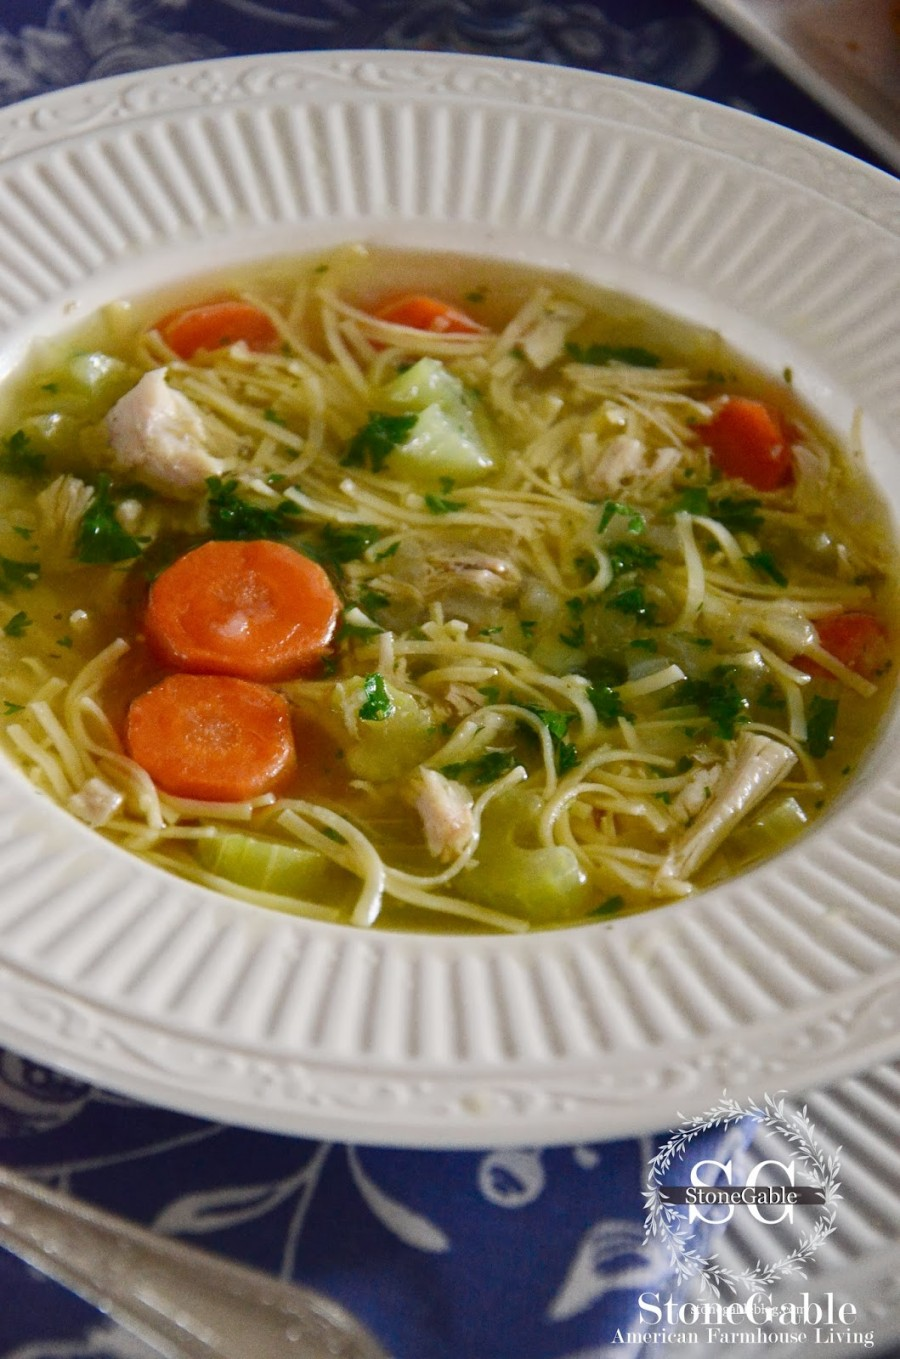 How To Make Perfect Chicken Noodle Soup - StoneGable